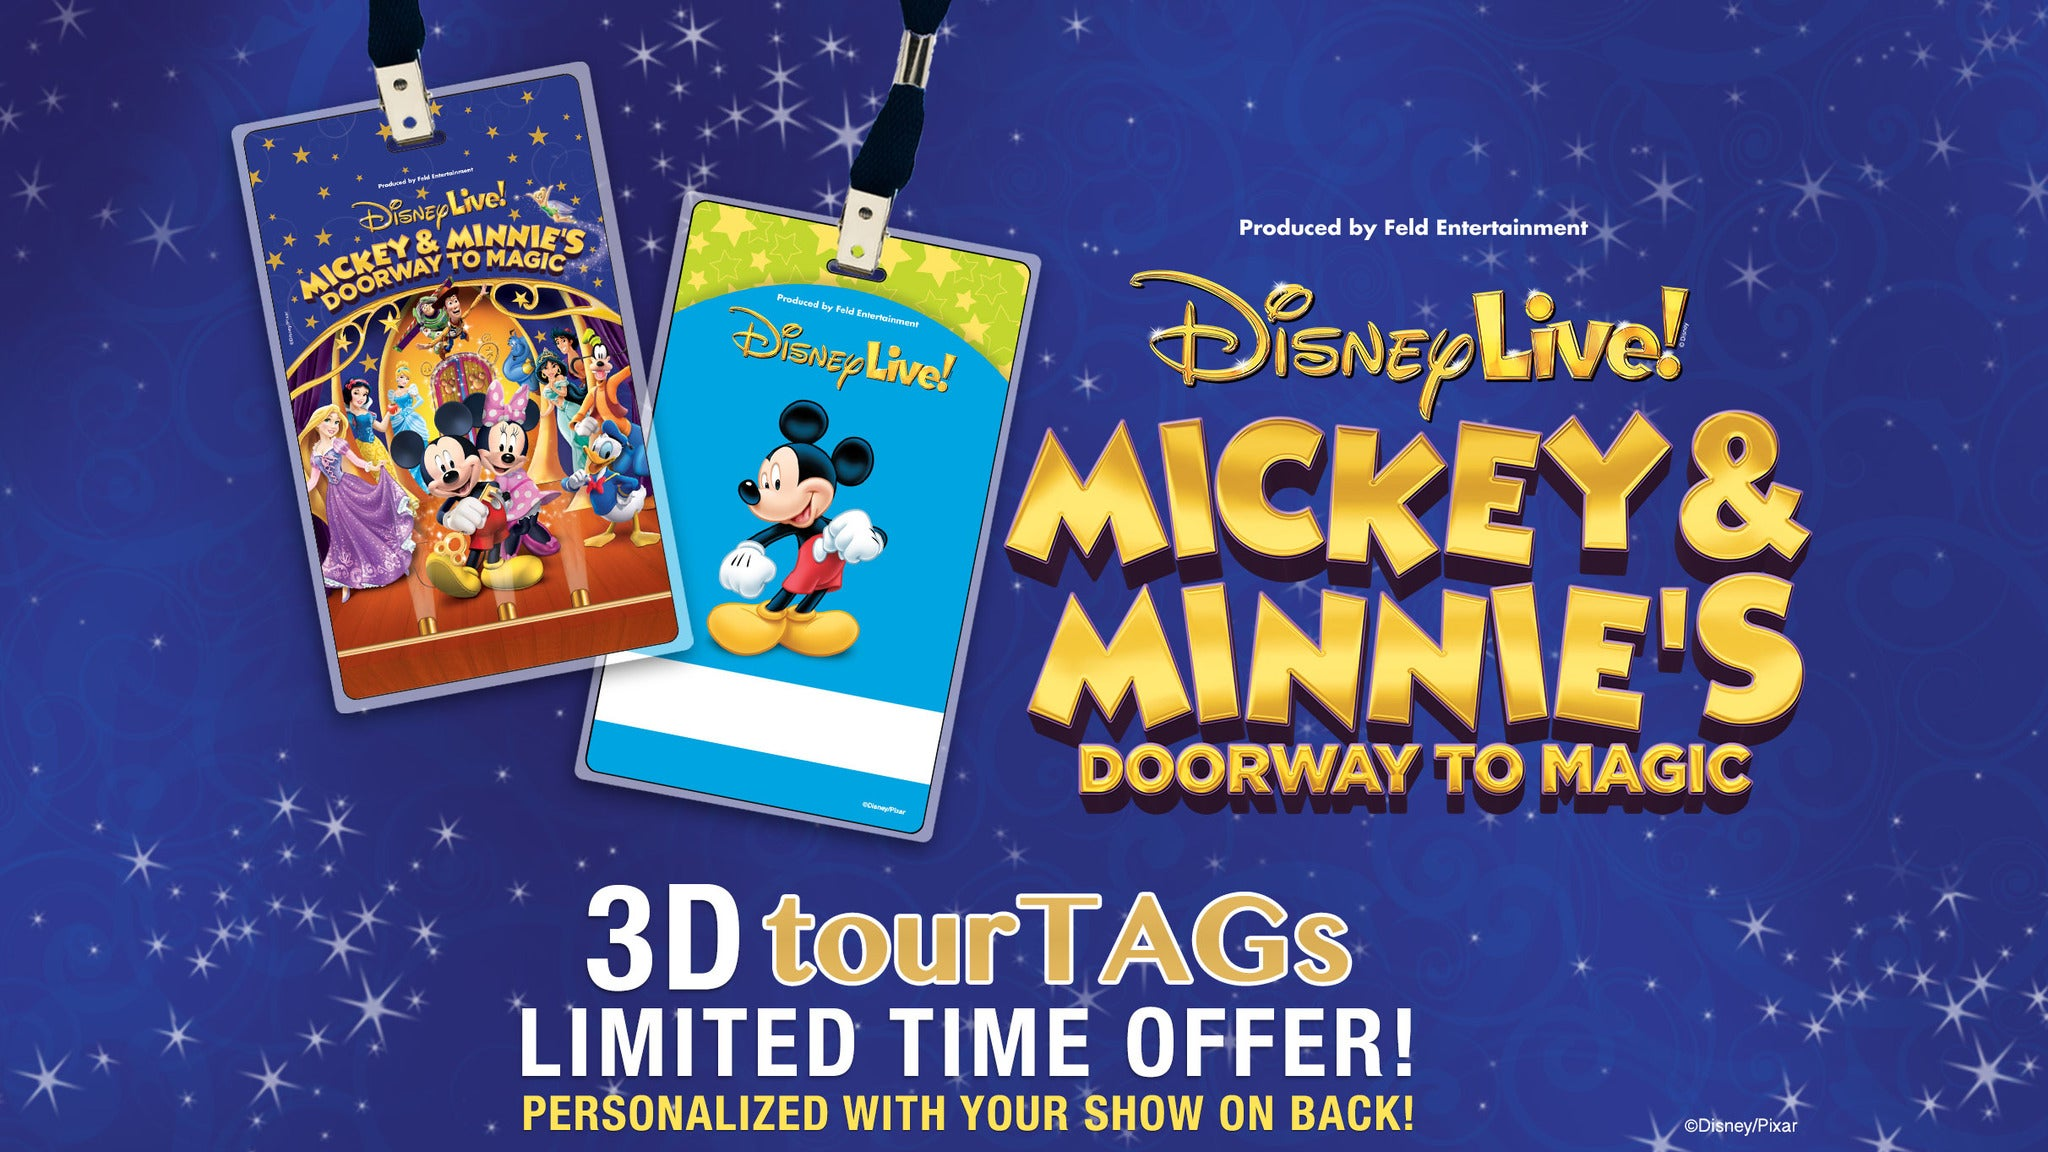 Disney Live! Mickey & Minnie's Doorway to Magic – Official tourTAGS